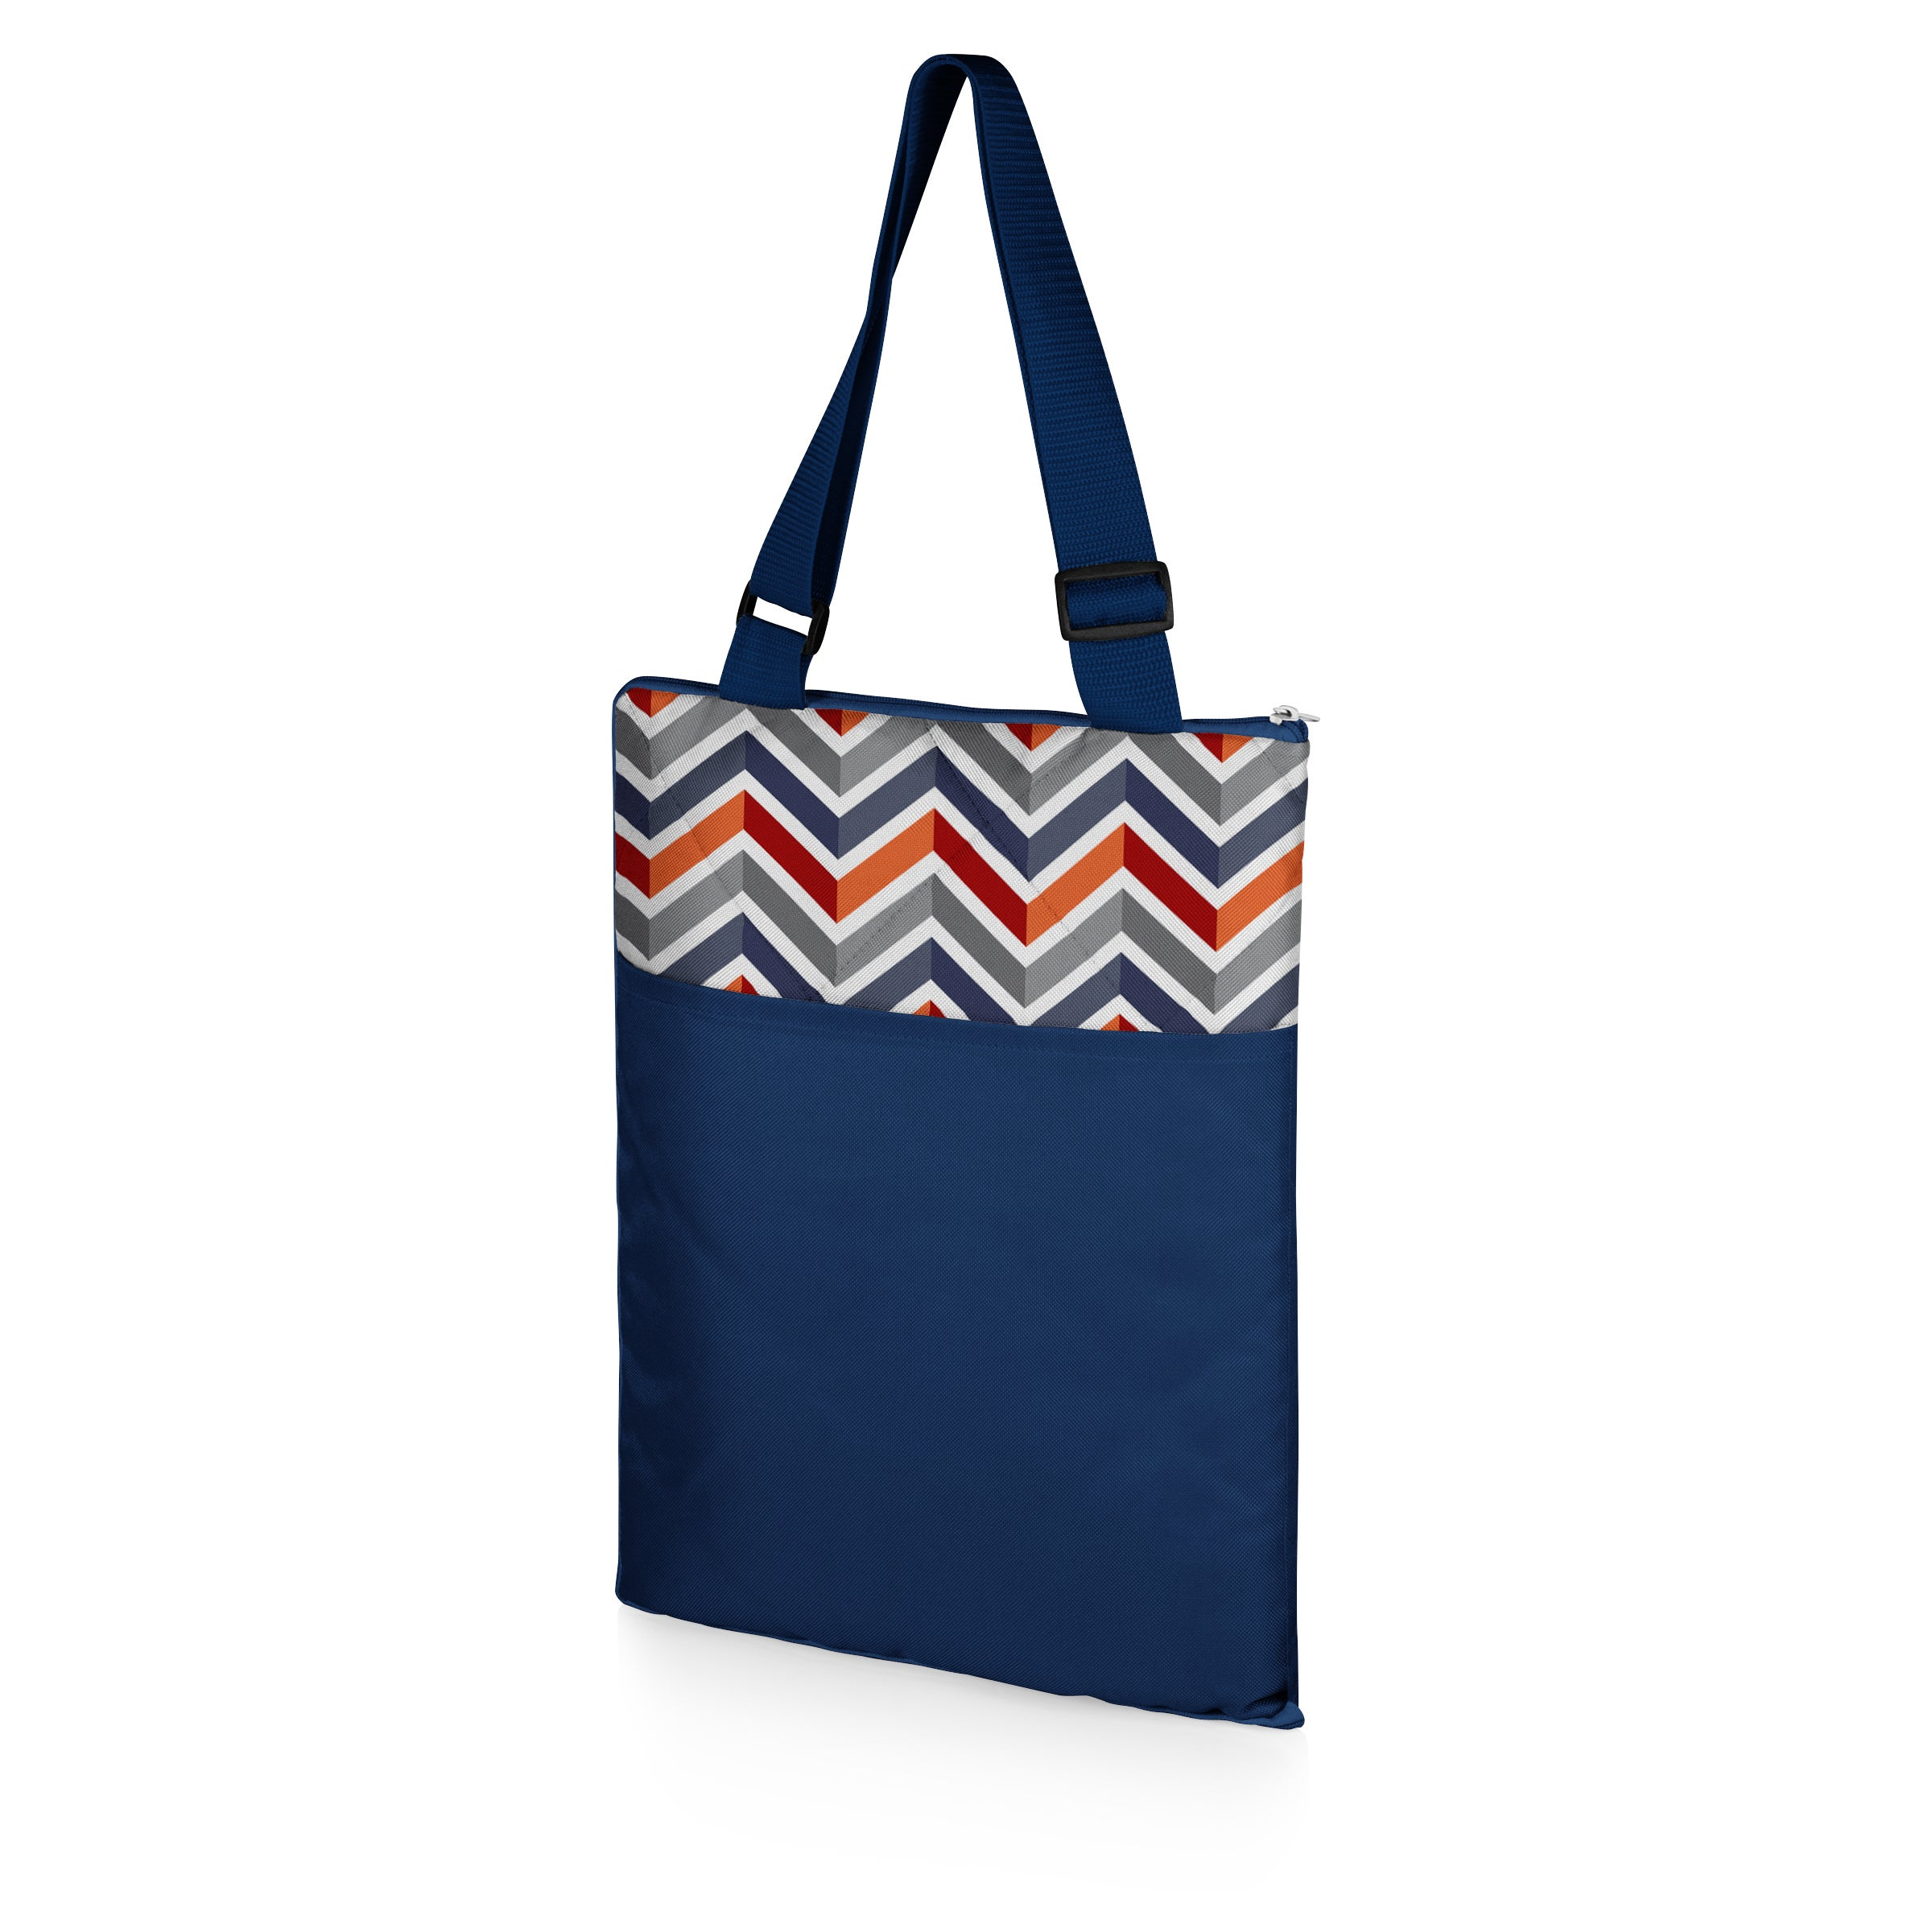 2056a2b53dd Shop Picnic Time Vista Outdoor Blanket Tote - Free Shipping On Orders Over   45 - Overstock - 10119672